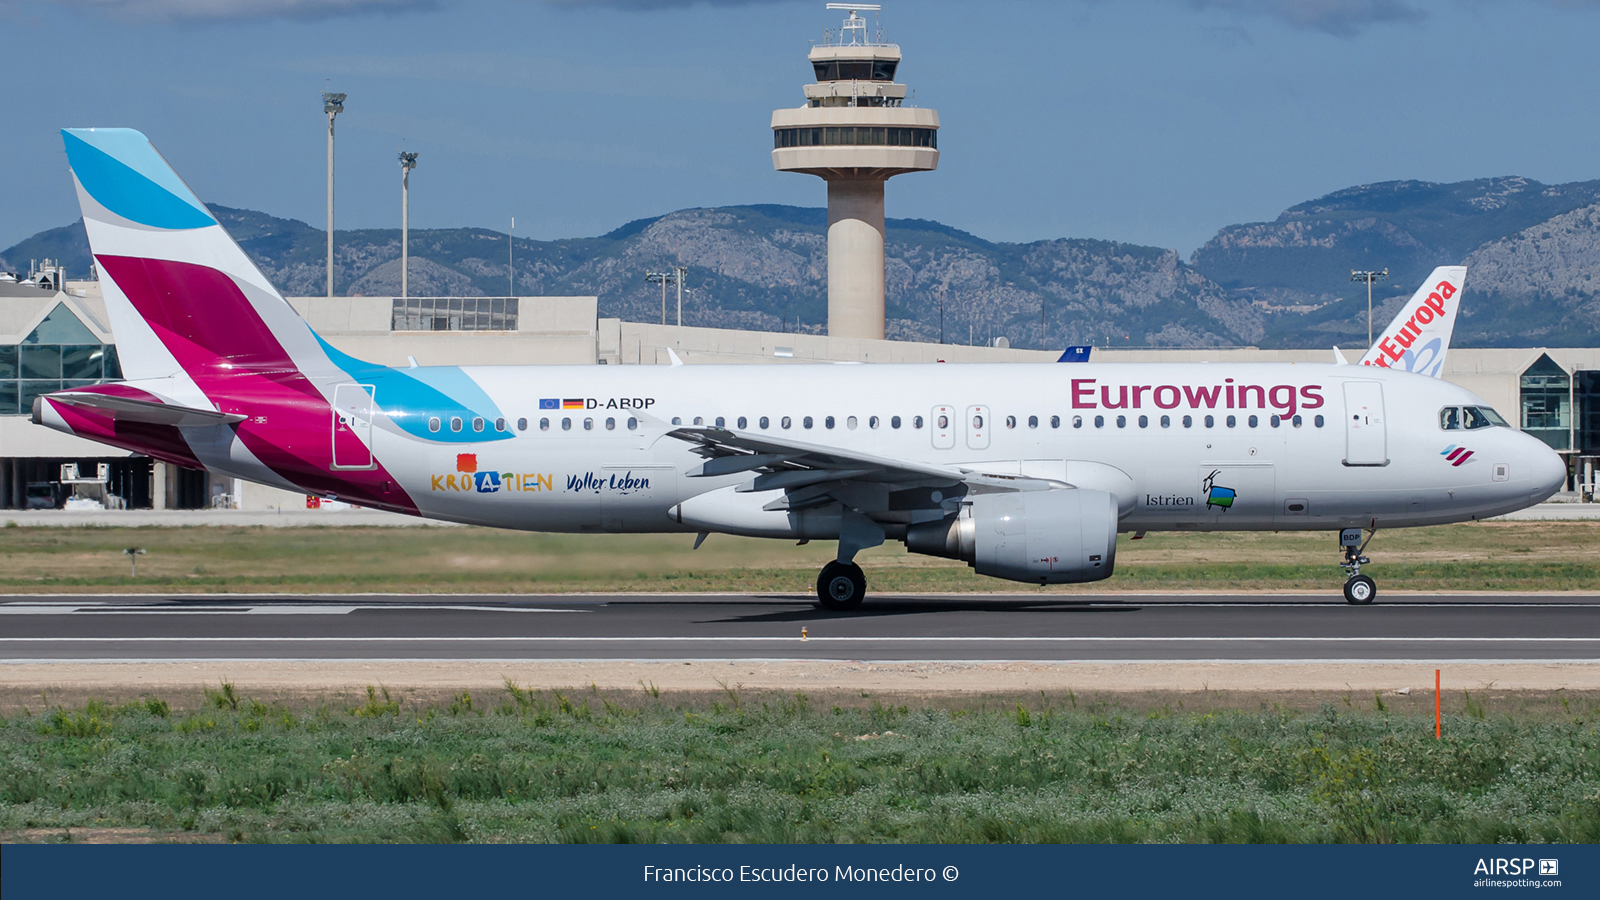 Eurowings  Airbus A320  D-ABDP